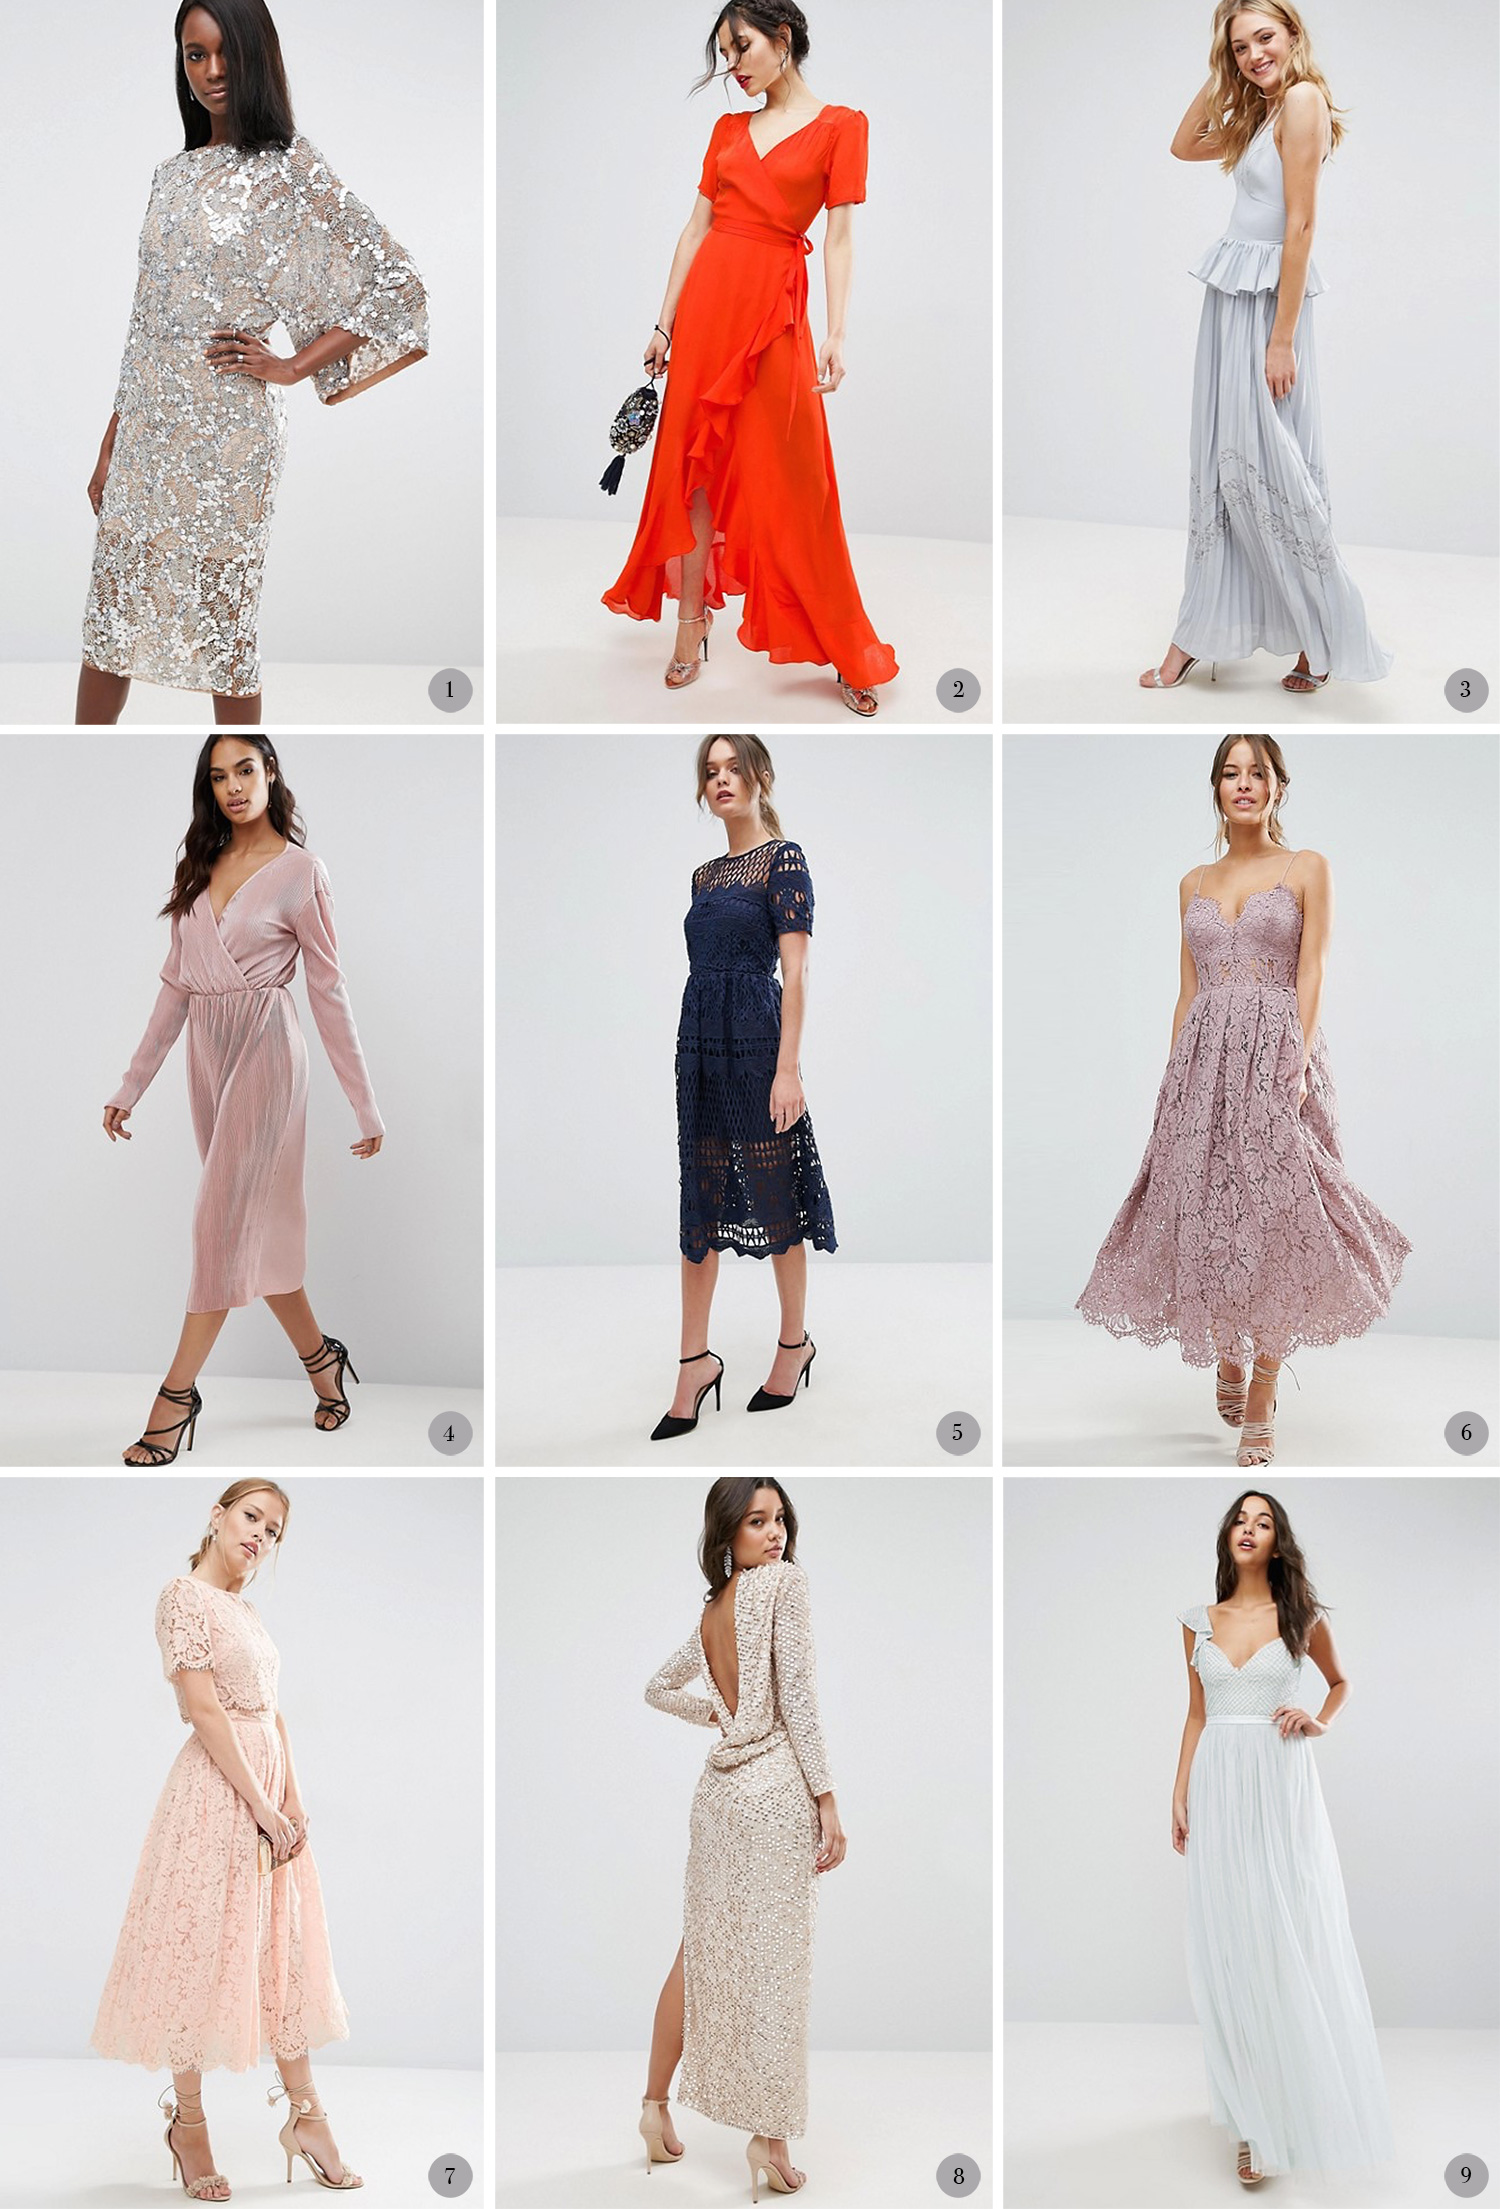 3dcc6451a01 Reader request: gala & wedding guest dresses - Christina Dueholm